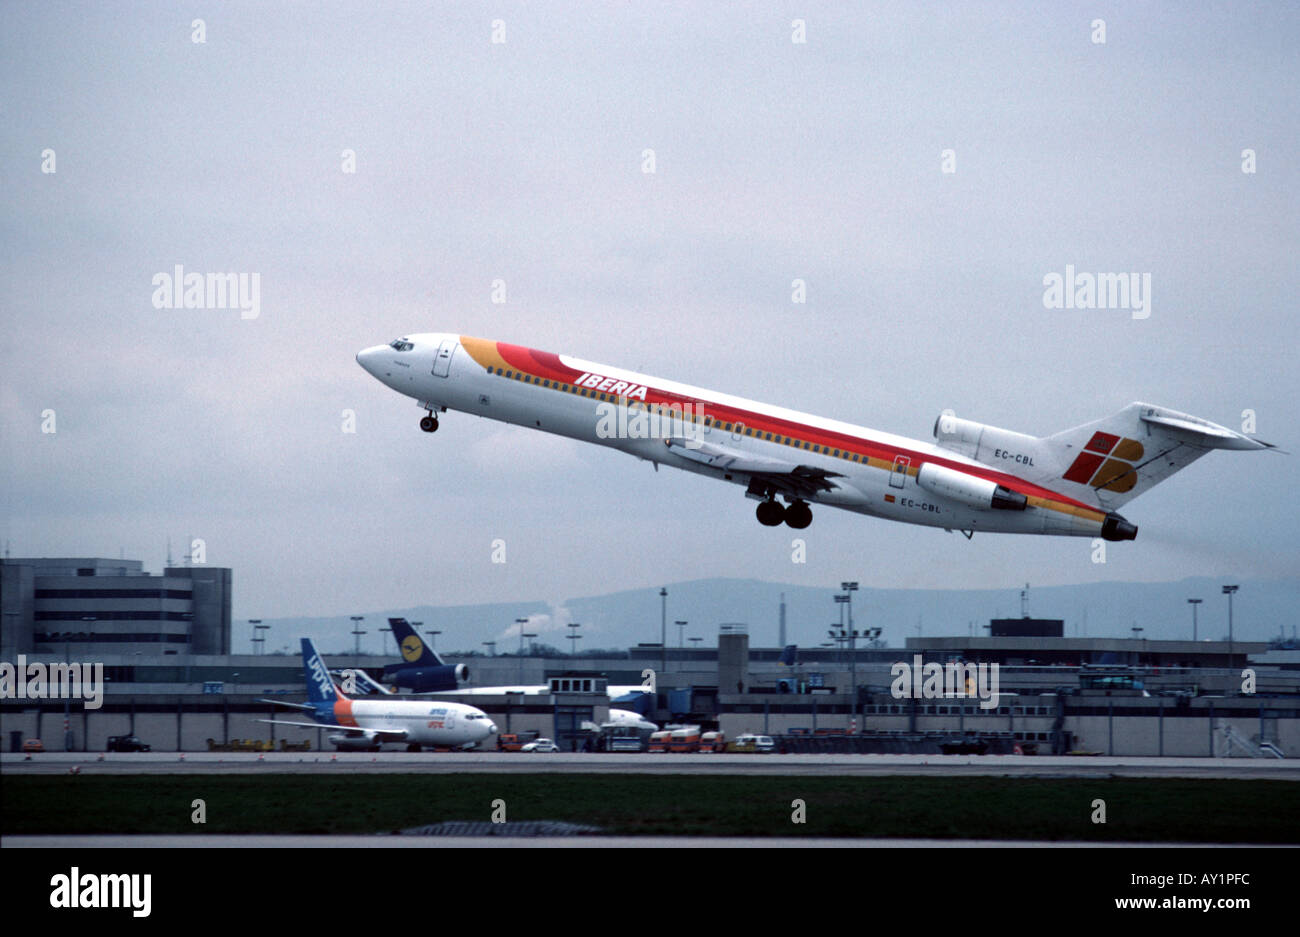 Aircraft taking off from airport - Stock Image